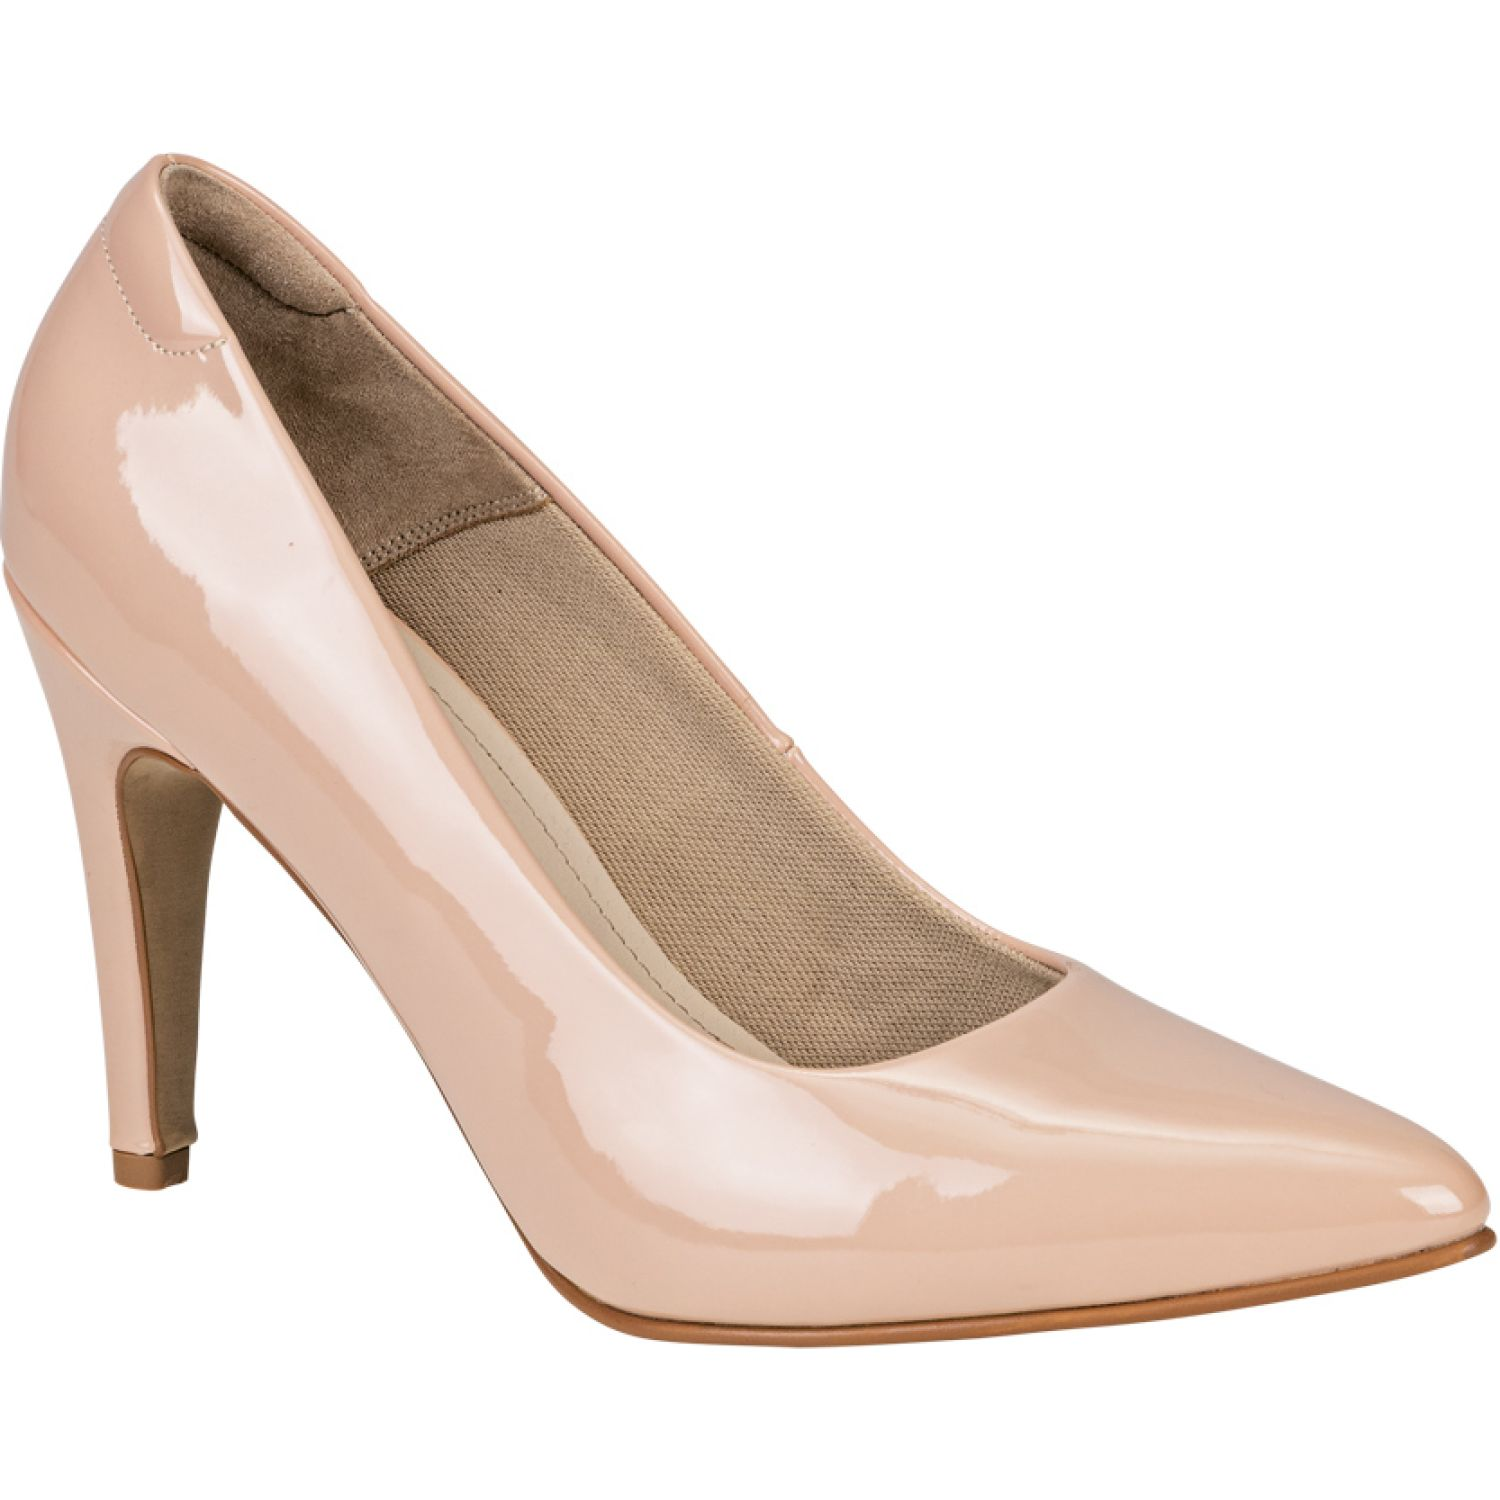 FOOTLOOSE Fh-01i20 NUDE Estiletos y pumps